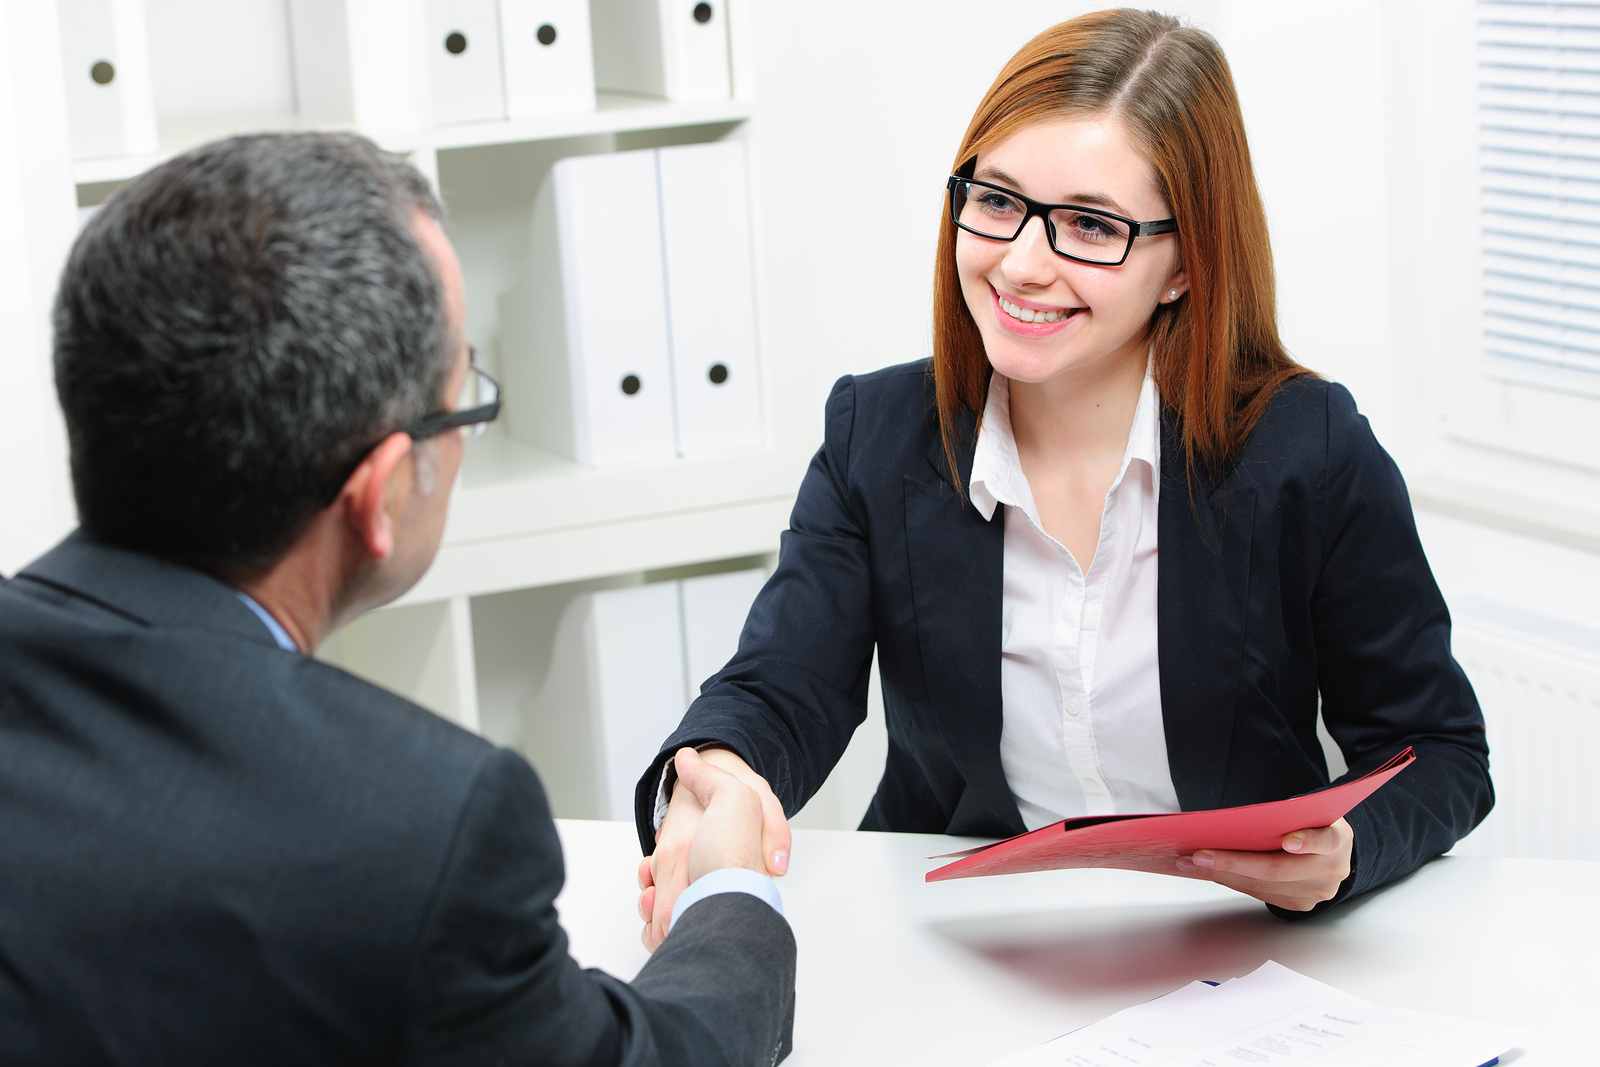 Spot Potential Employees with These Interview Questions